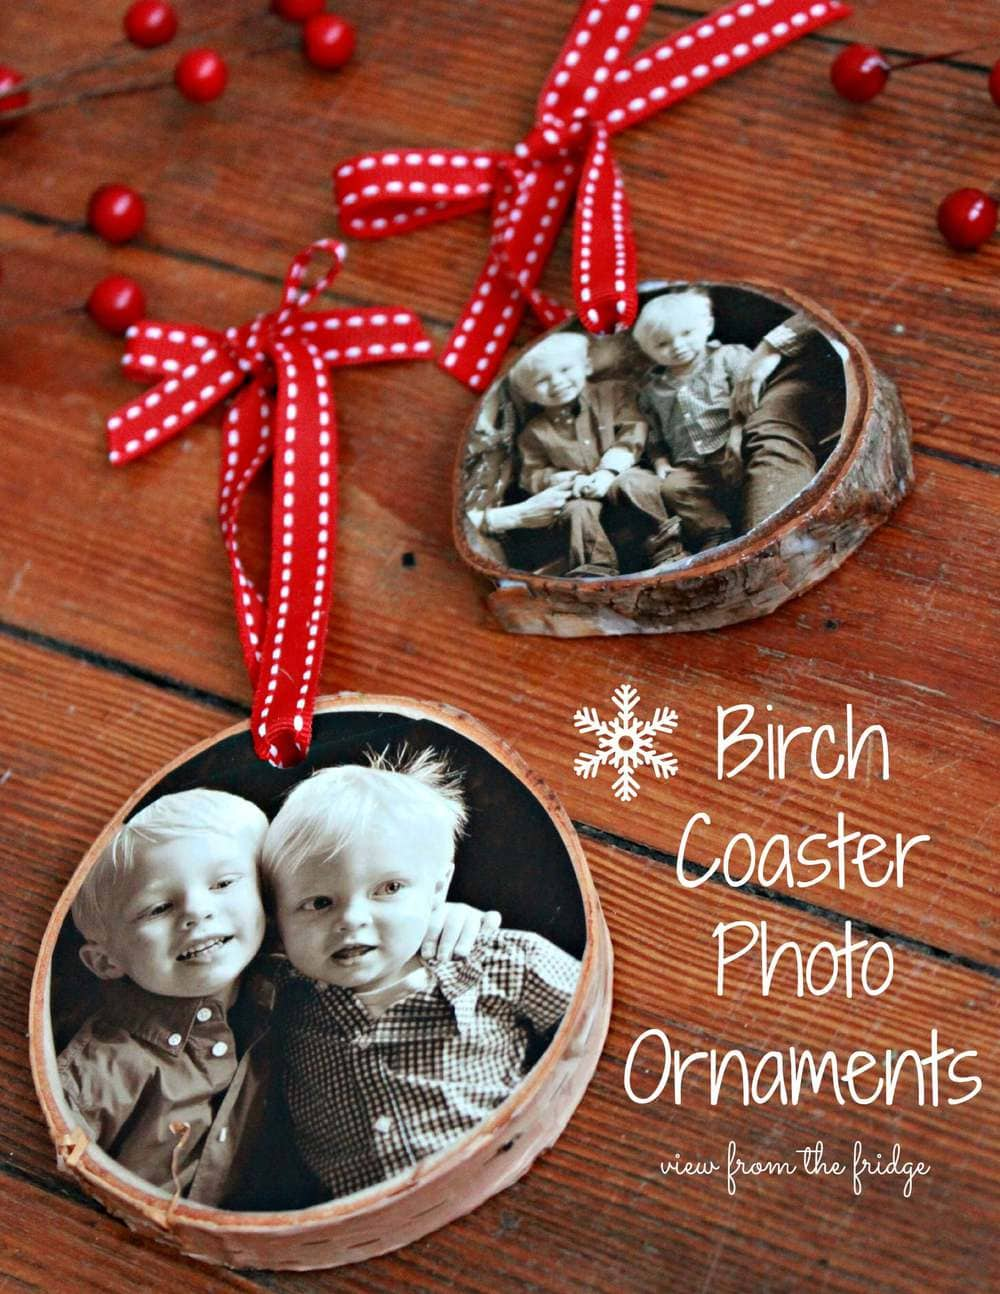 birch coaster photo ornament